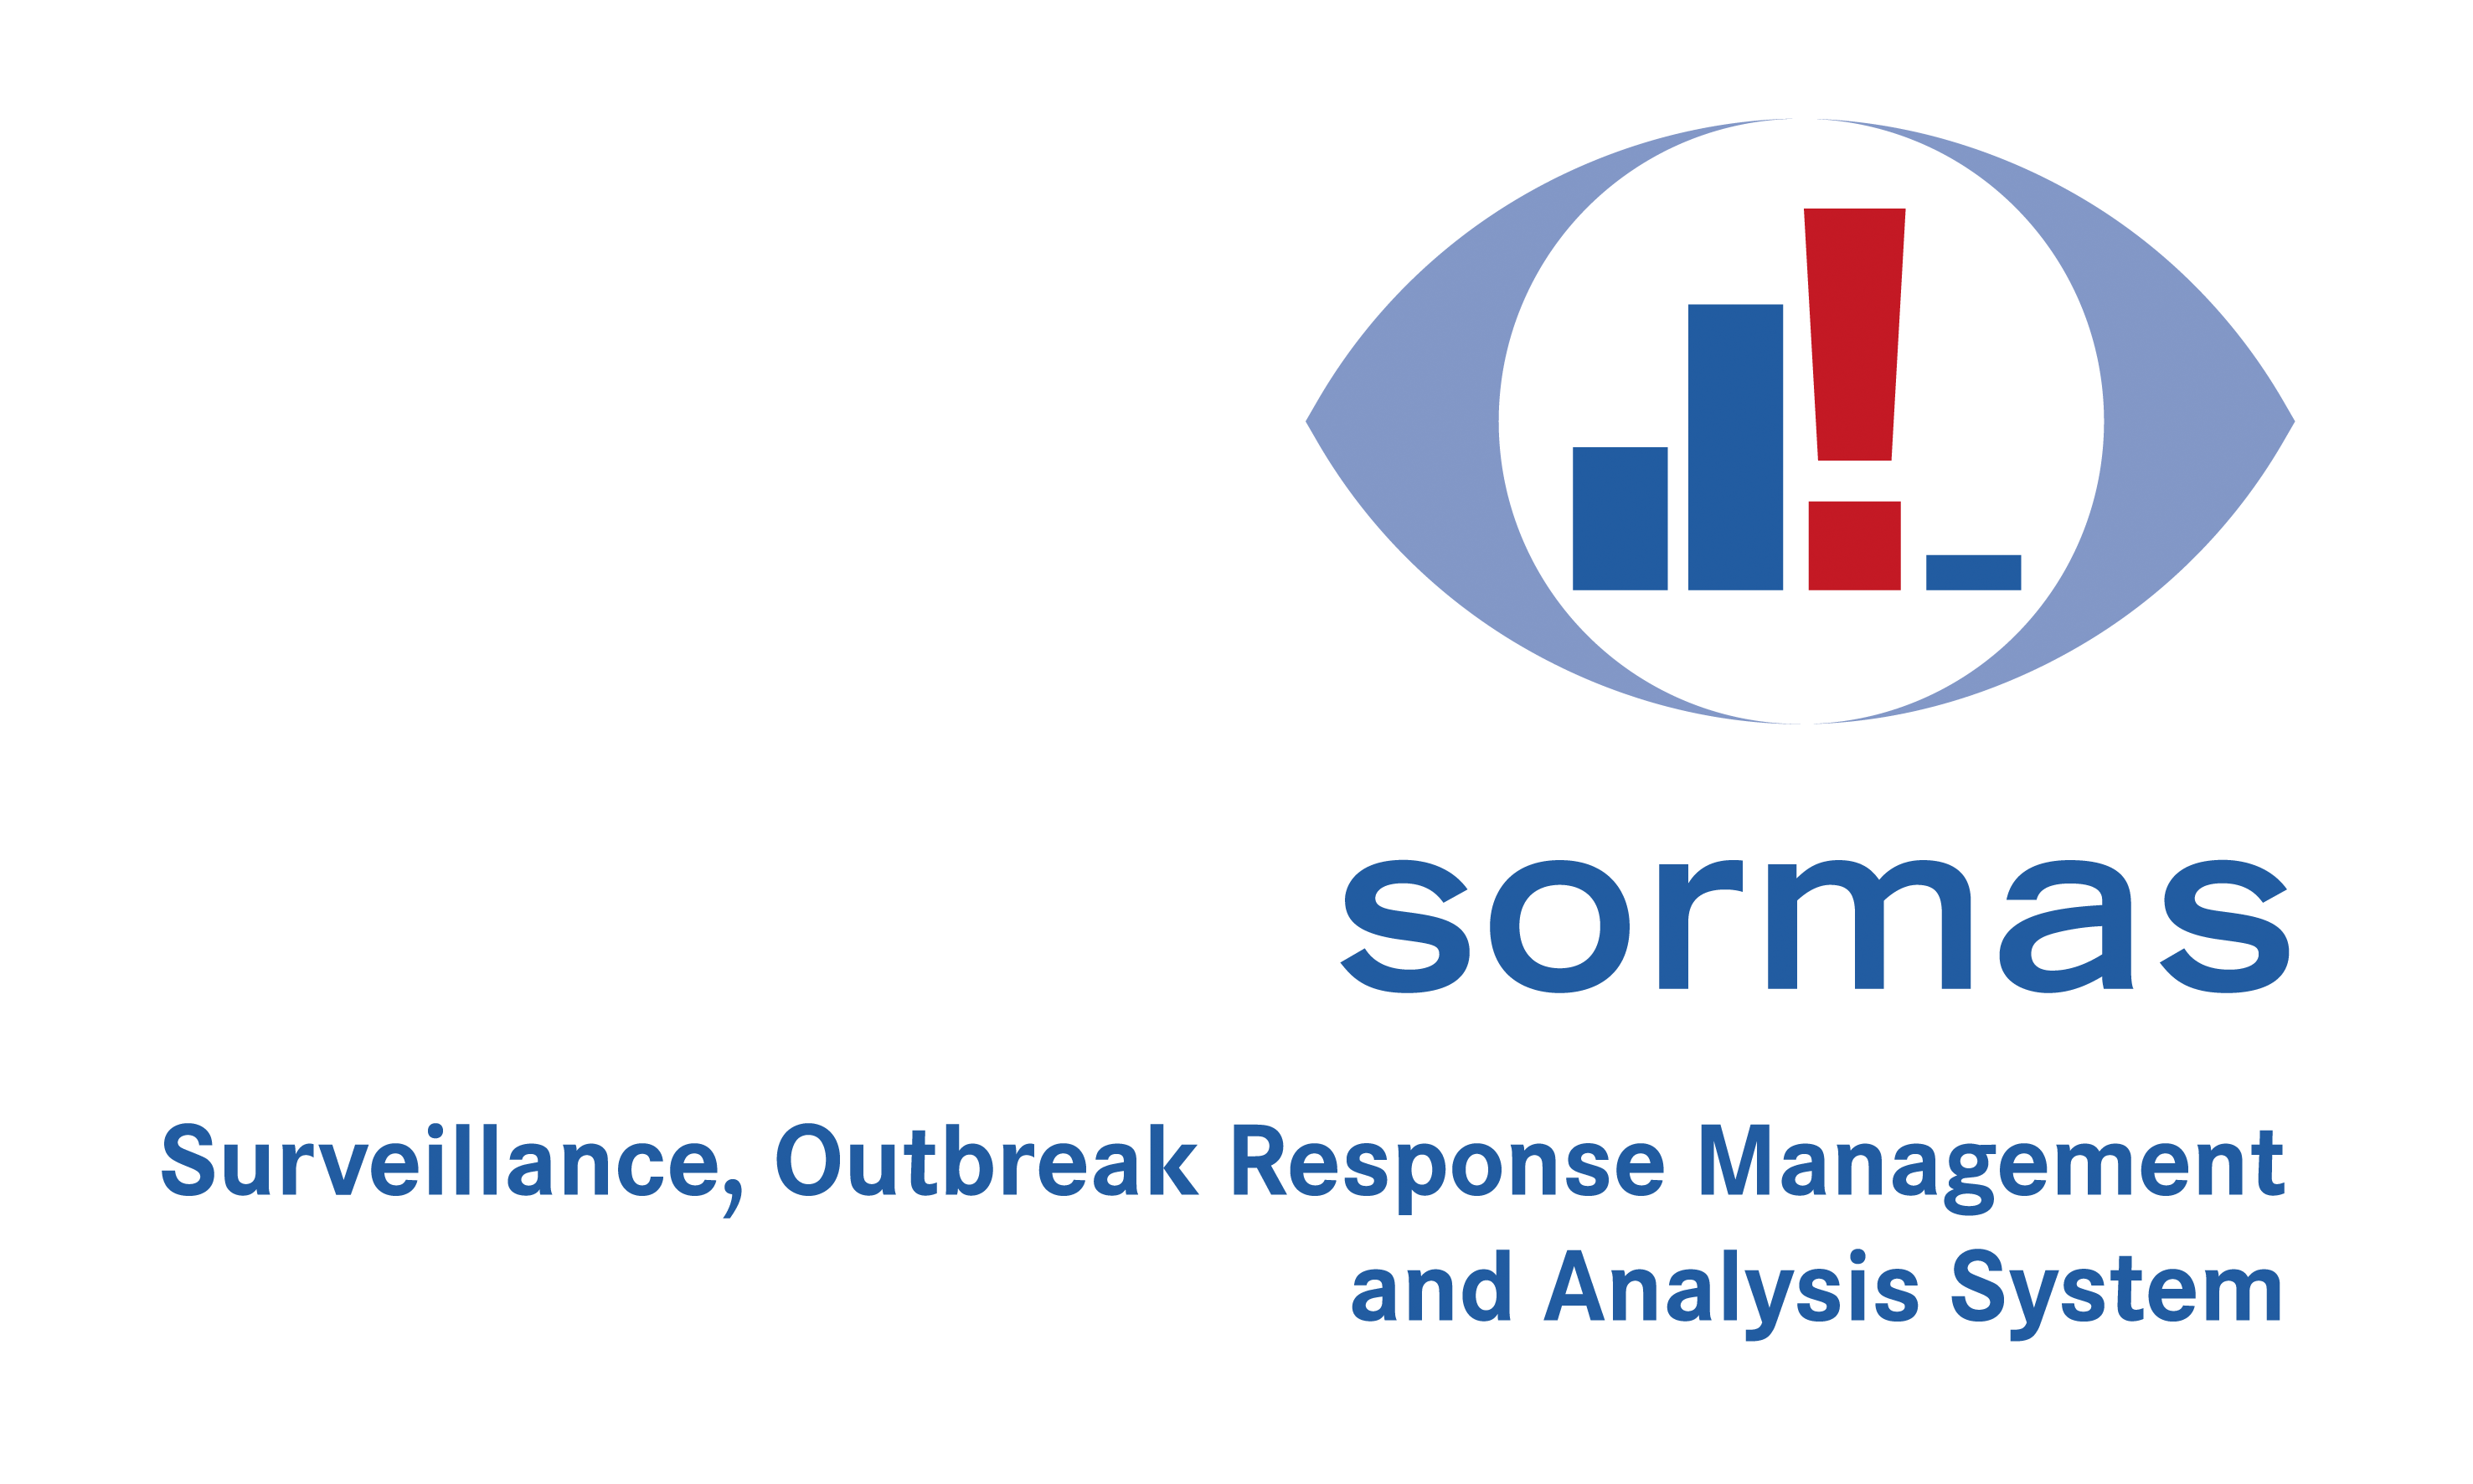 Project Management for Surveillance Outbreak Response Management & Analysis System (SORMAS), HZI